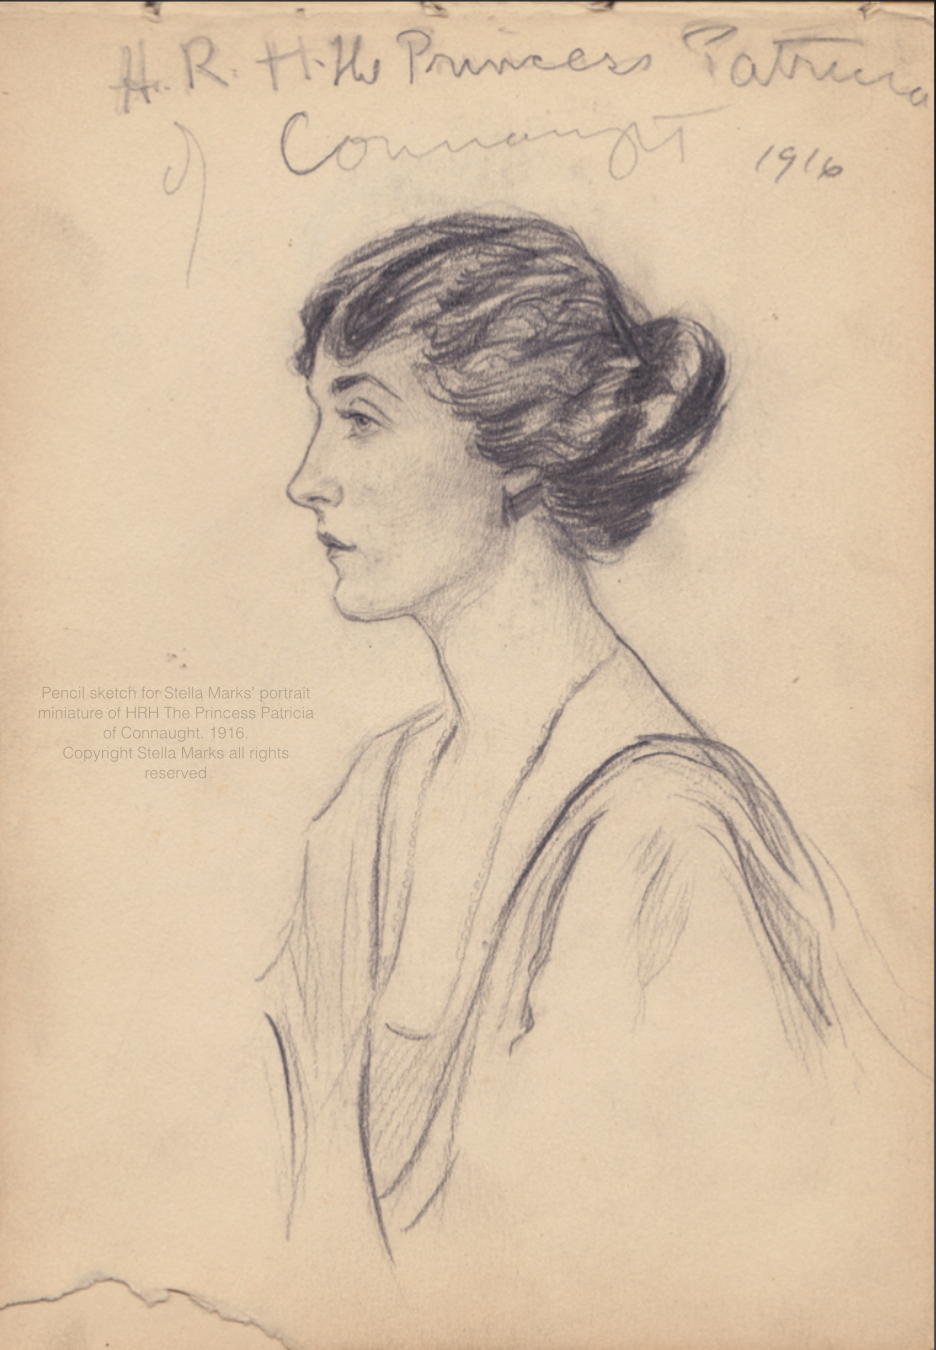 Pencil sketch for Stella Marks' portrait miniature of H.R.H. The Princess Patricia of Connaught, 1916. Copyright Stella Marks' Estate all rights reserved